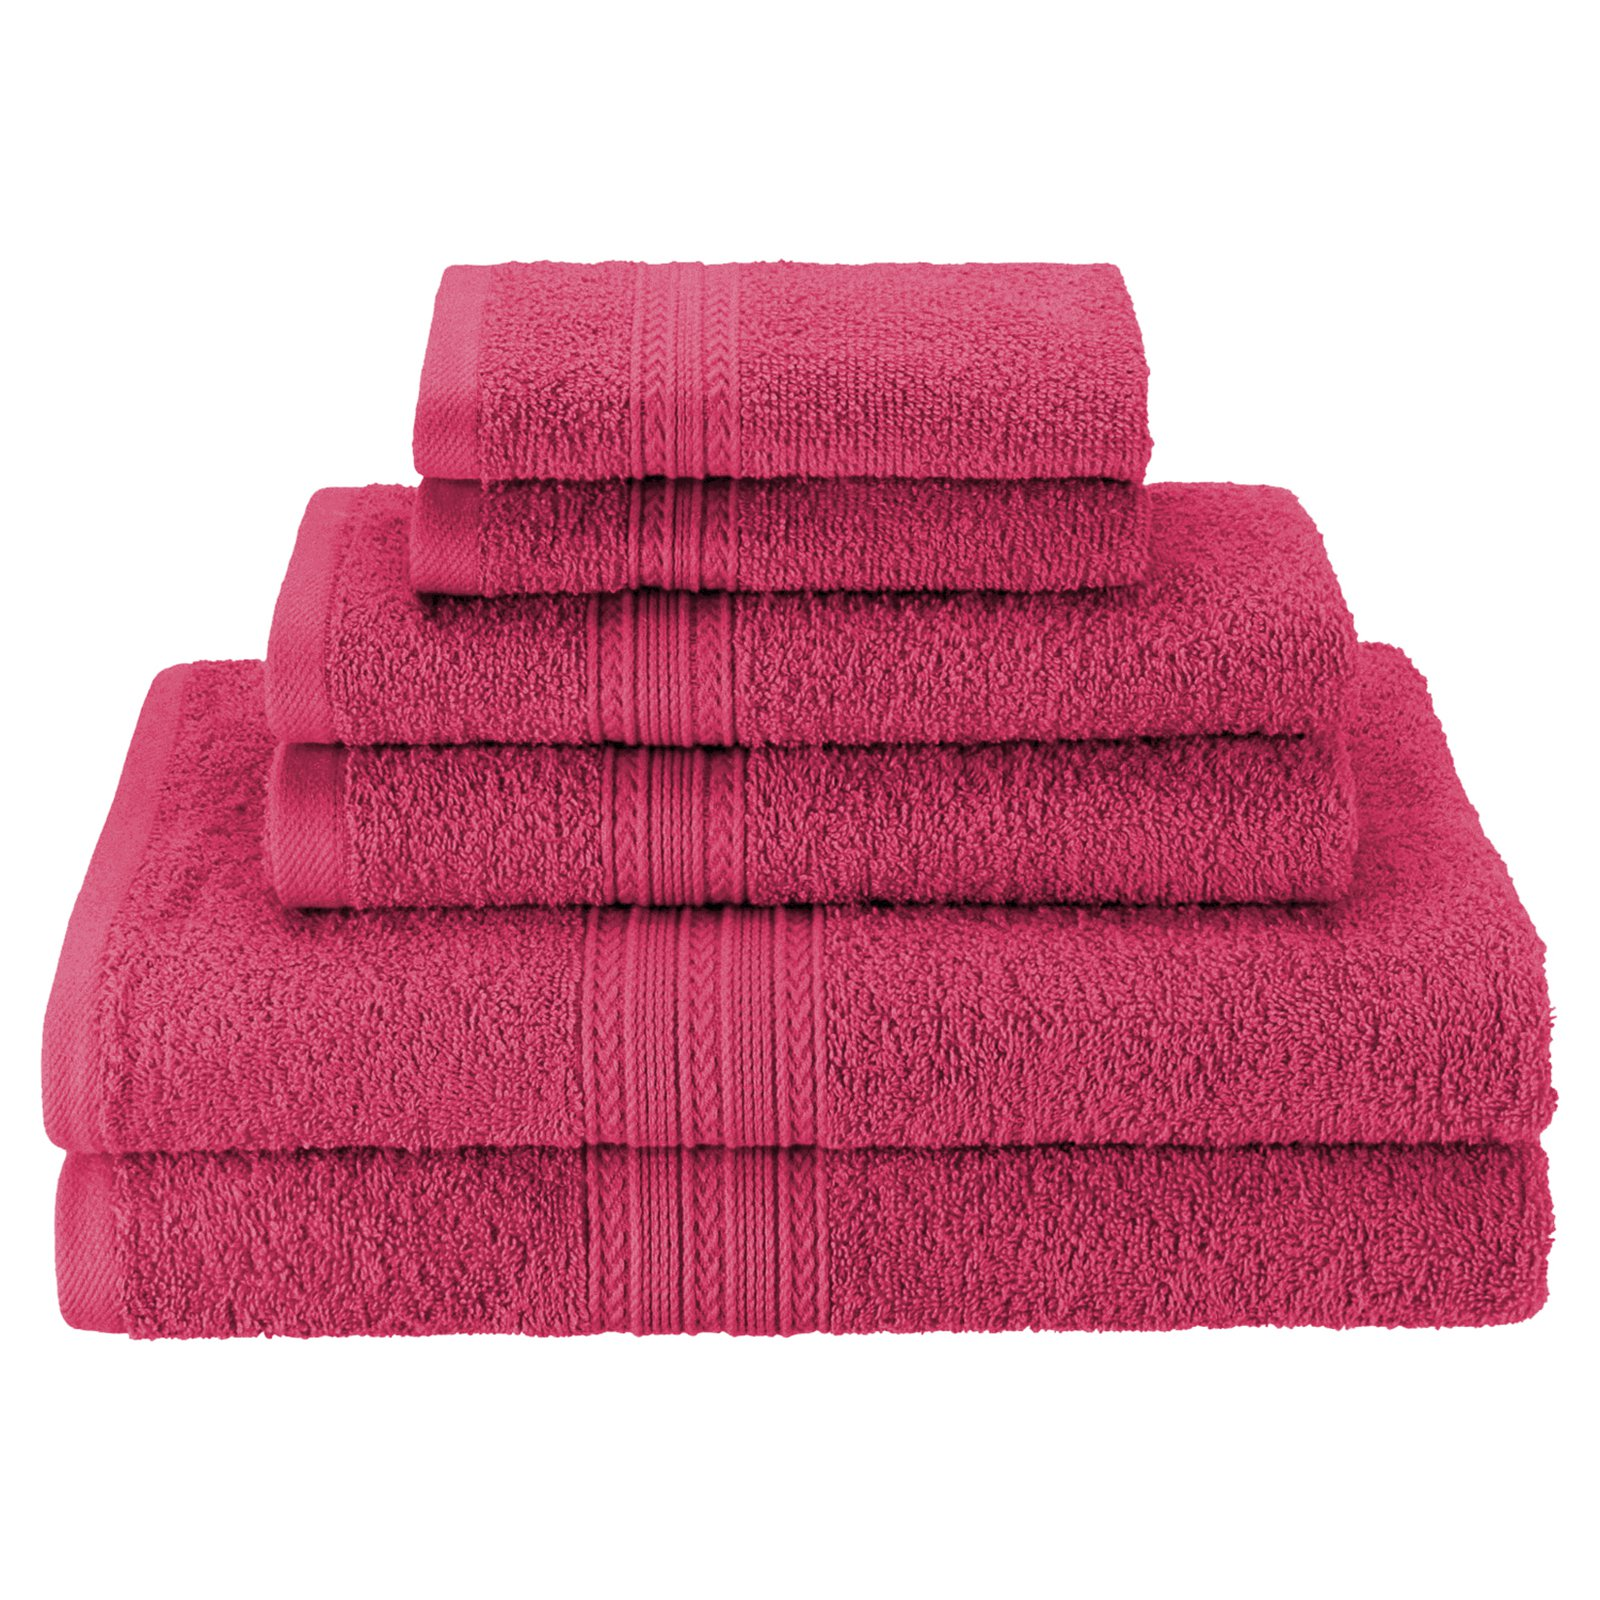 Superior Eco-Friendly 100% Ringspun Cotton 6Pc Towel Set